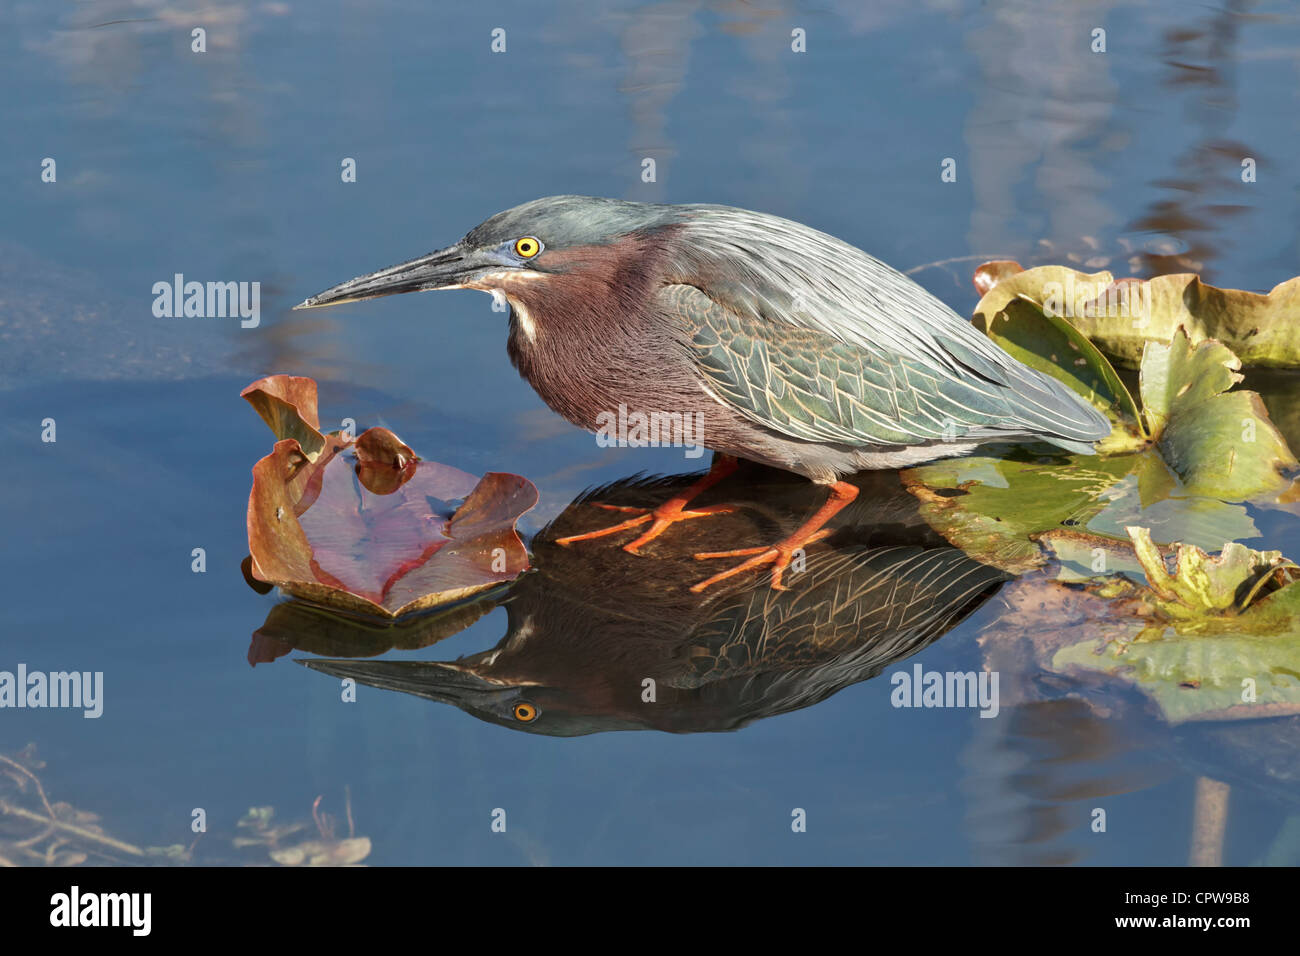 An adult Green Heron patiently waiting whilst fishing - Stock Image